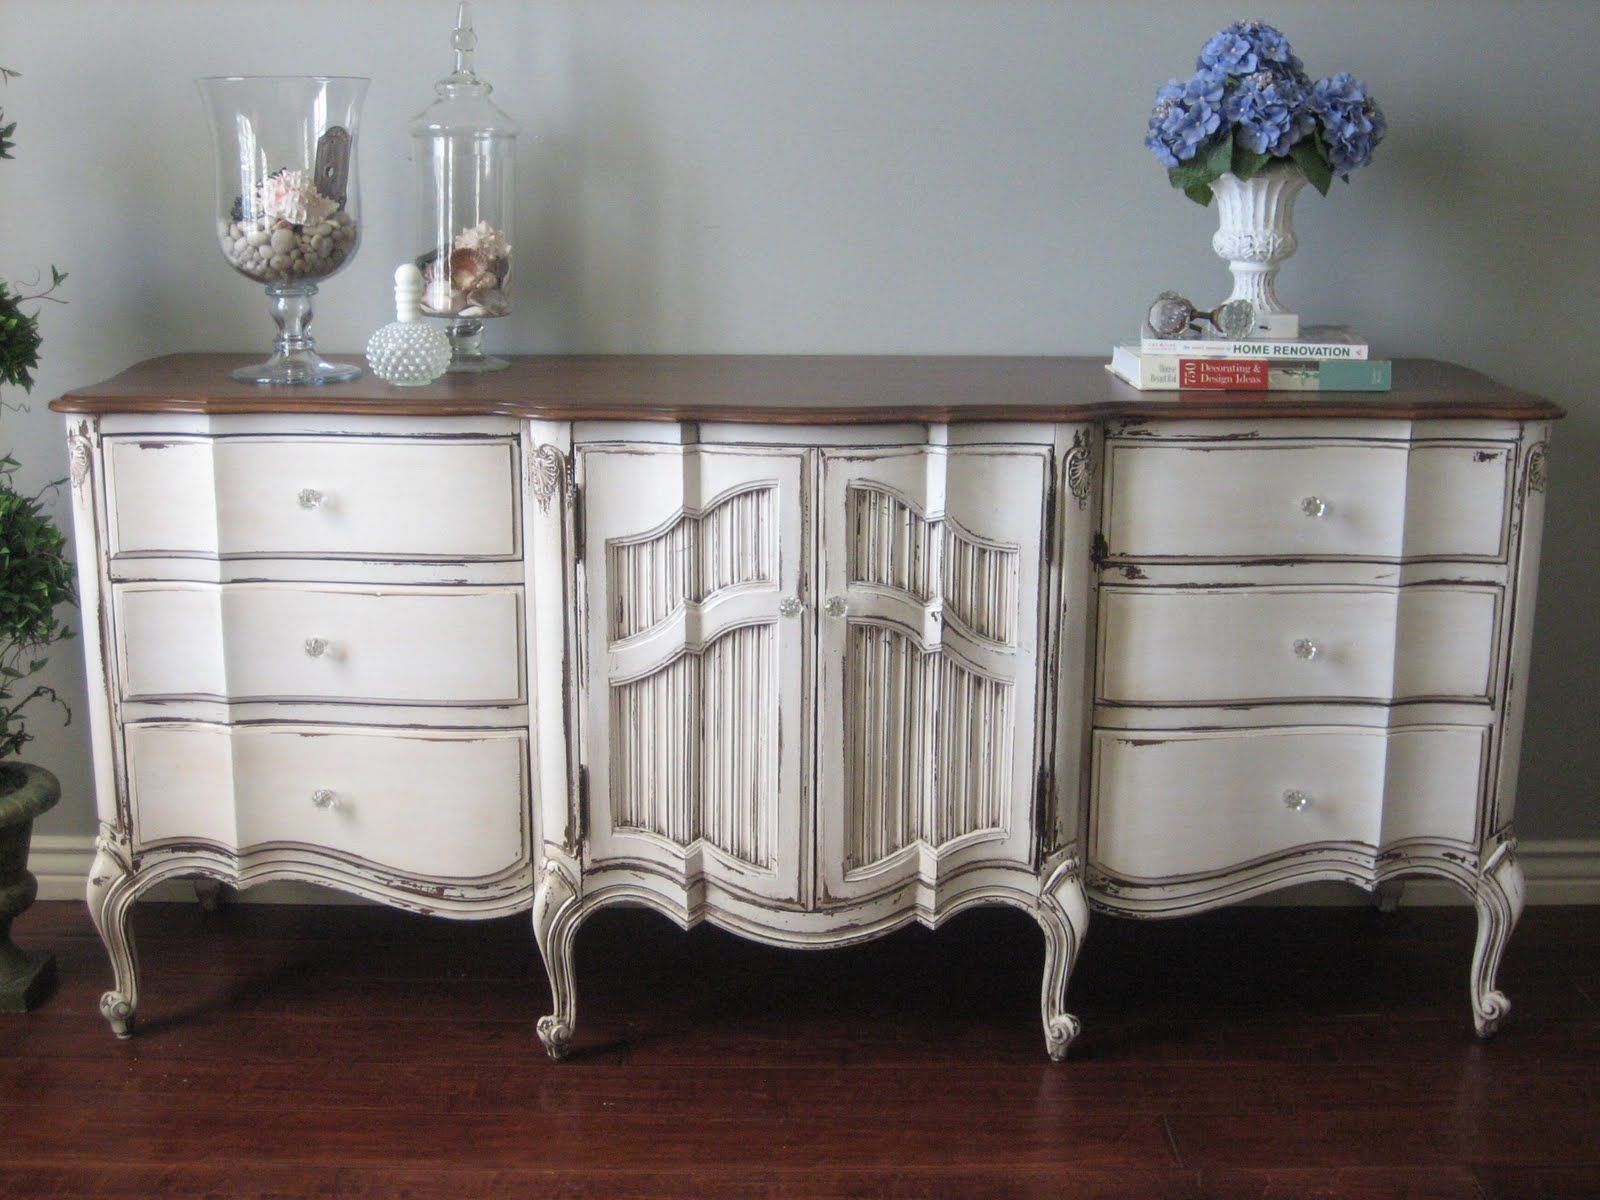 painted French Provincial